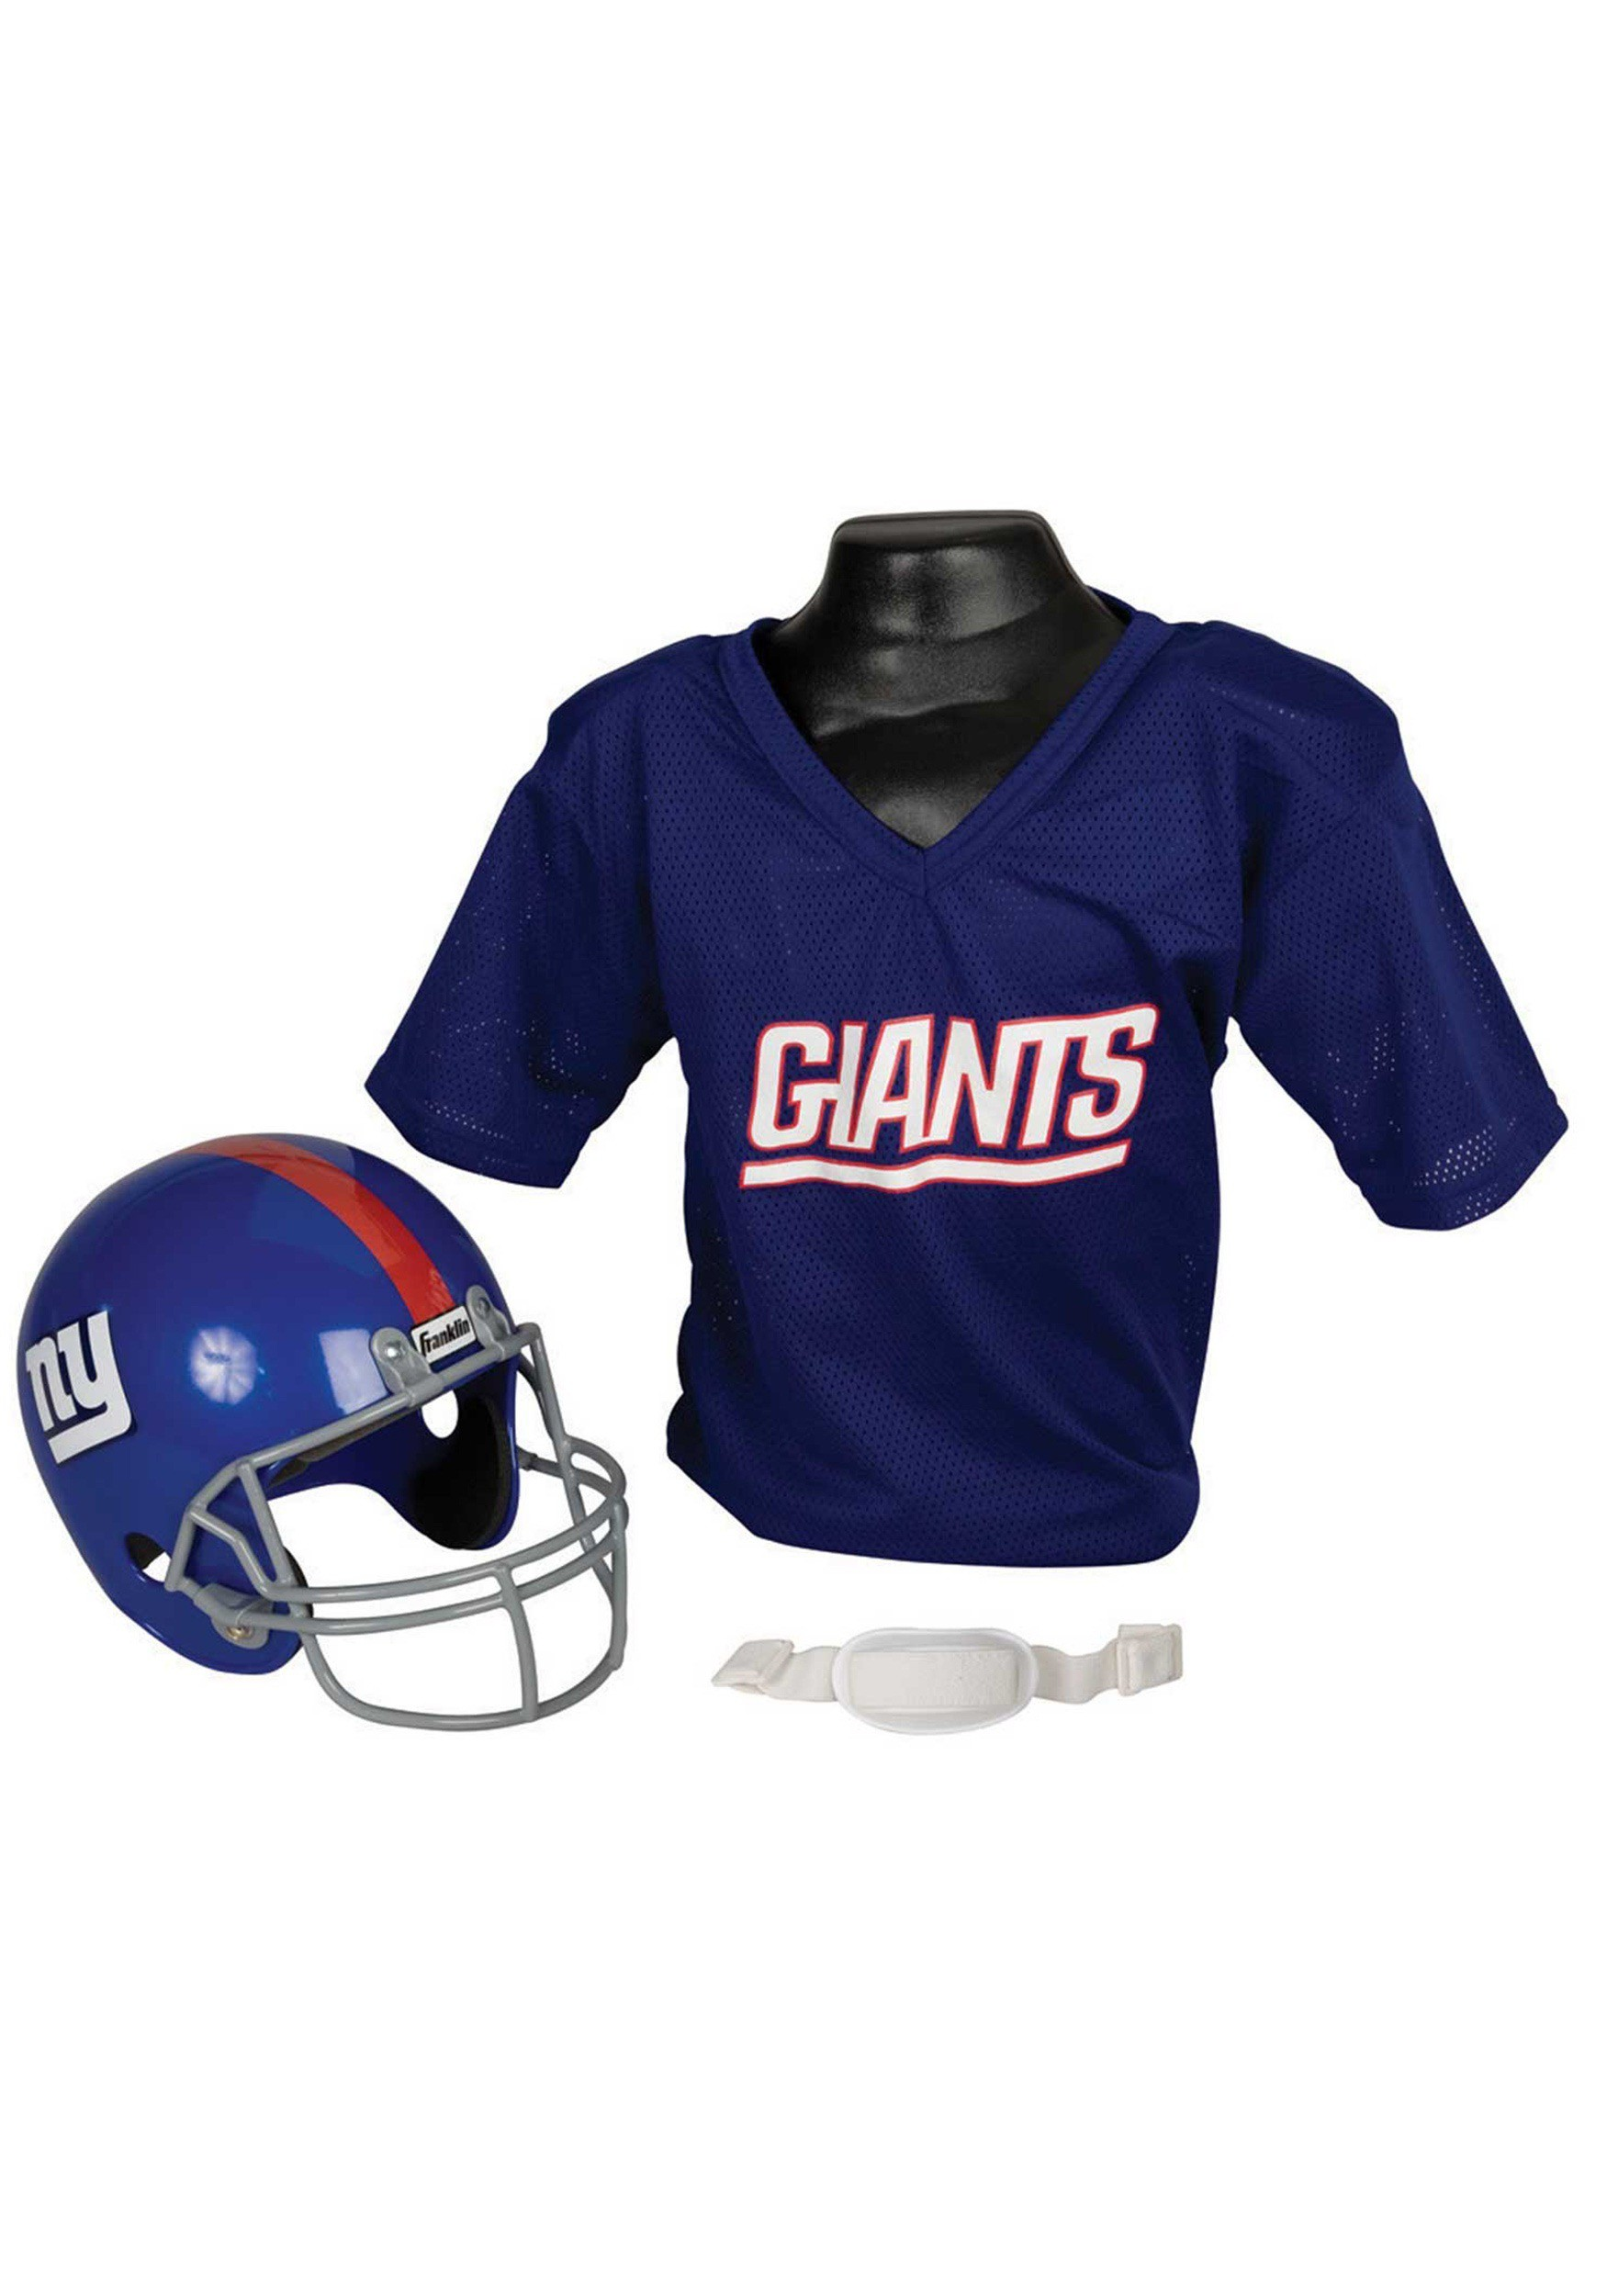 Child NFL New York Giants Helmet and Jersey Costume Set